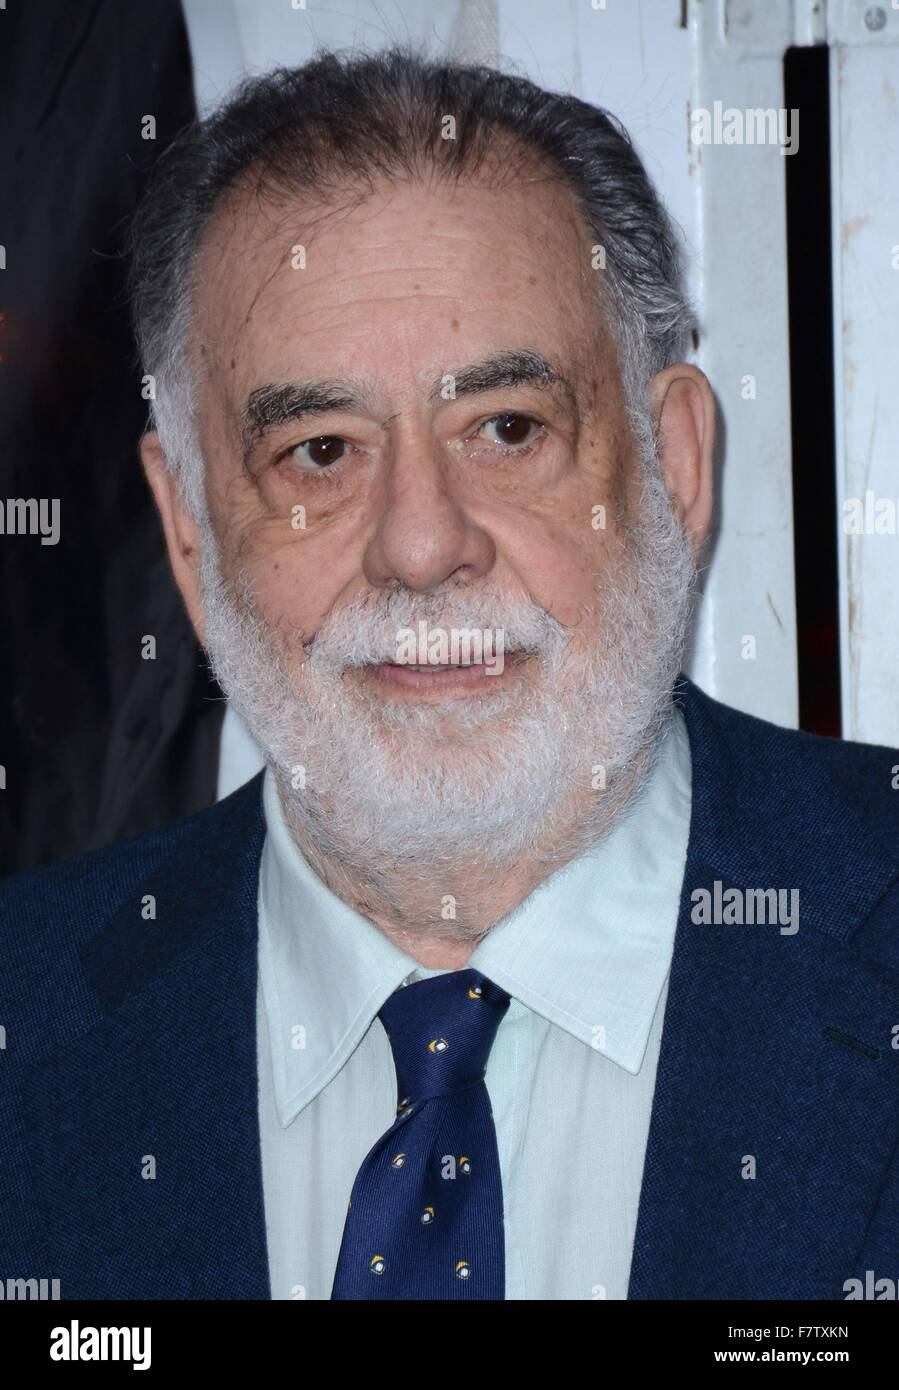 New York, NY, USA. 2nd Dec, 2015. Francis Ford Coppola at arrivals for A VERY MURRAY CHRISTMAS Premiere on NETFLIX, - Stock Image